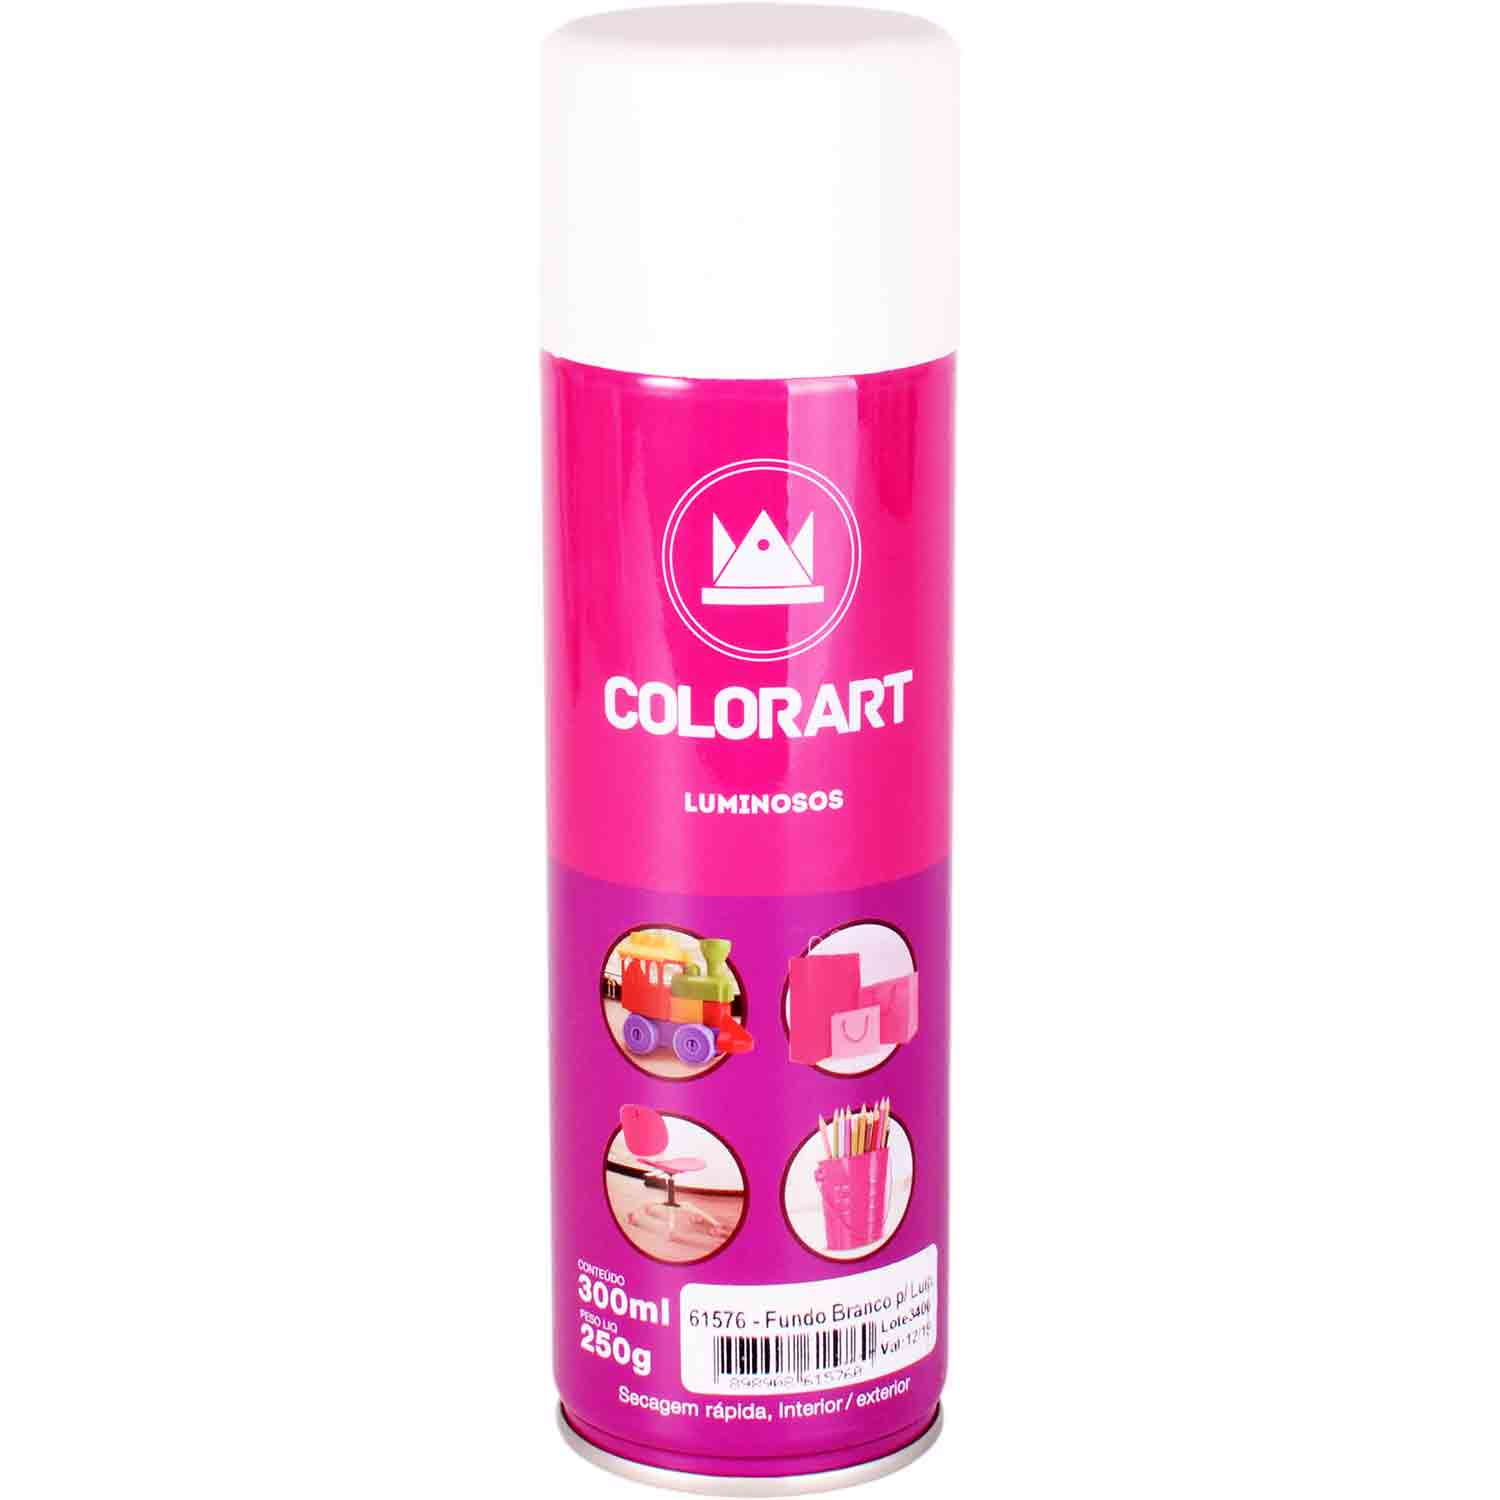 Primer Fundo Branco para Tinta Luminosa Colorart 300ml